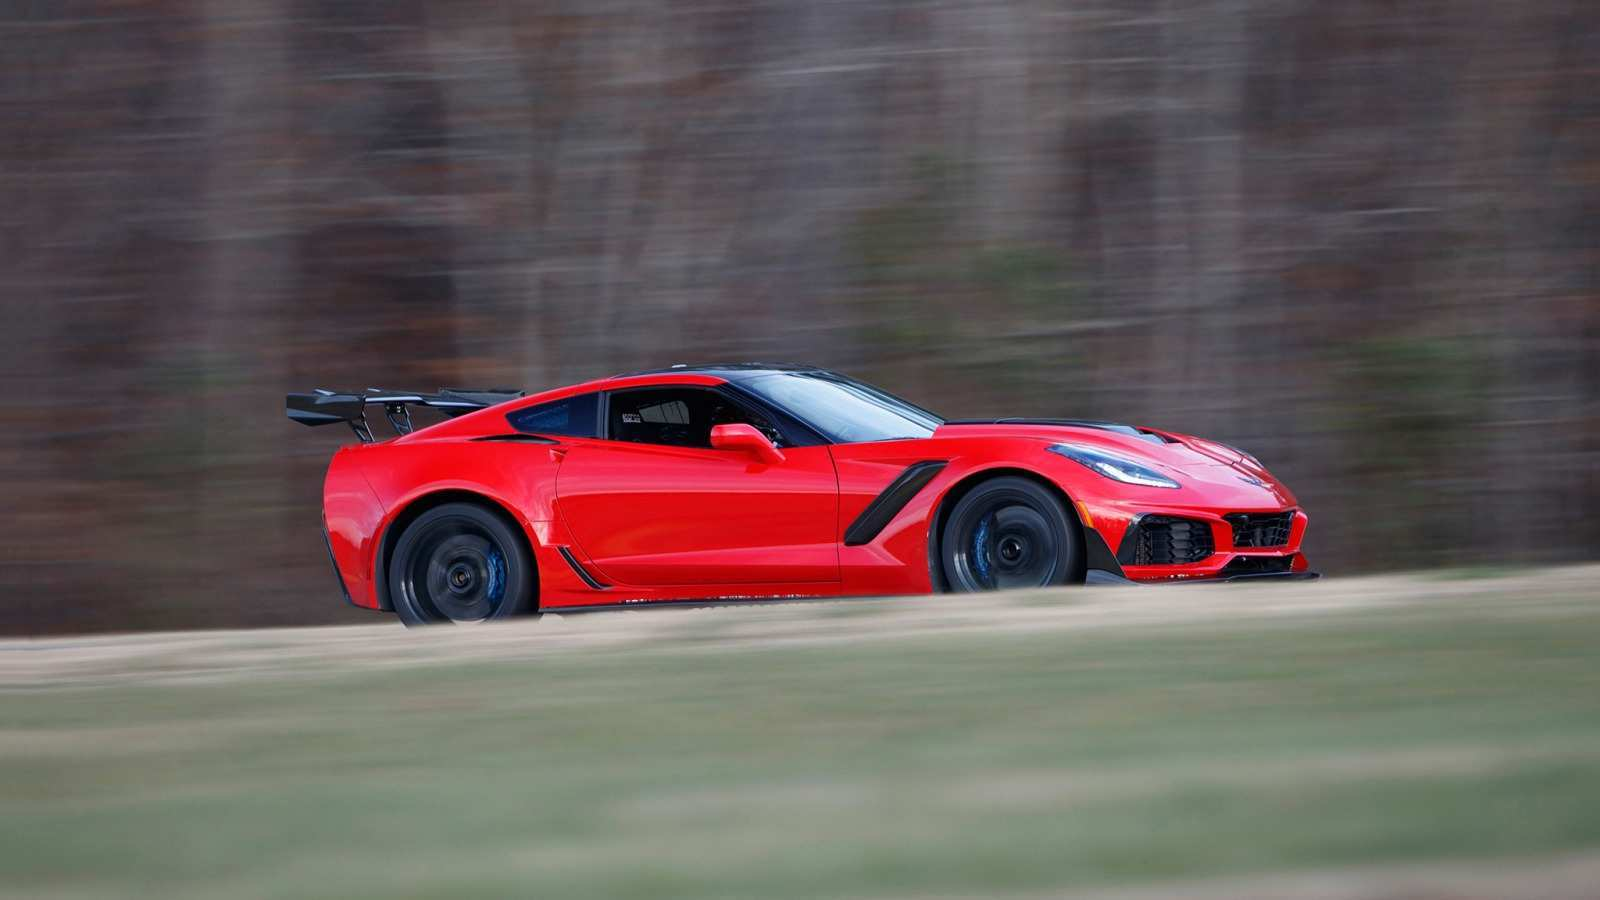 14 All New 2019 Chevrolet Corvette Z06 Price And Review